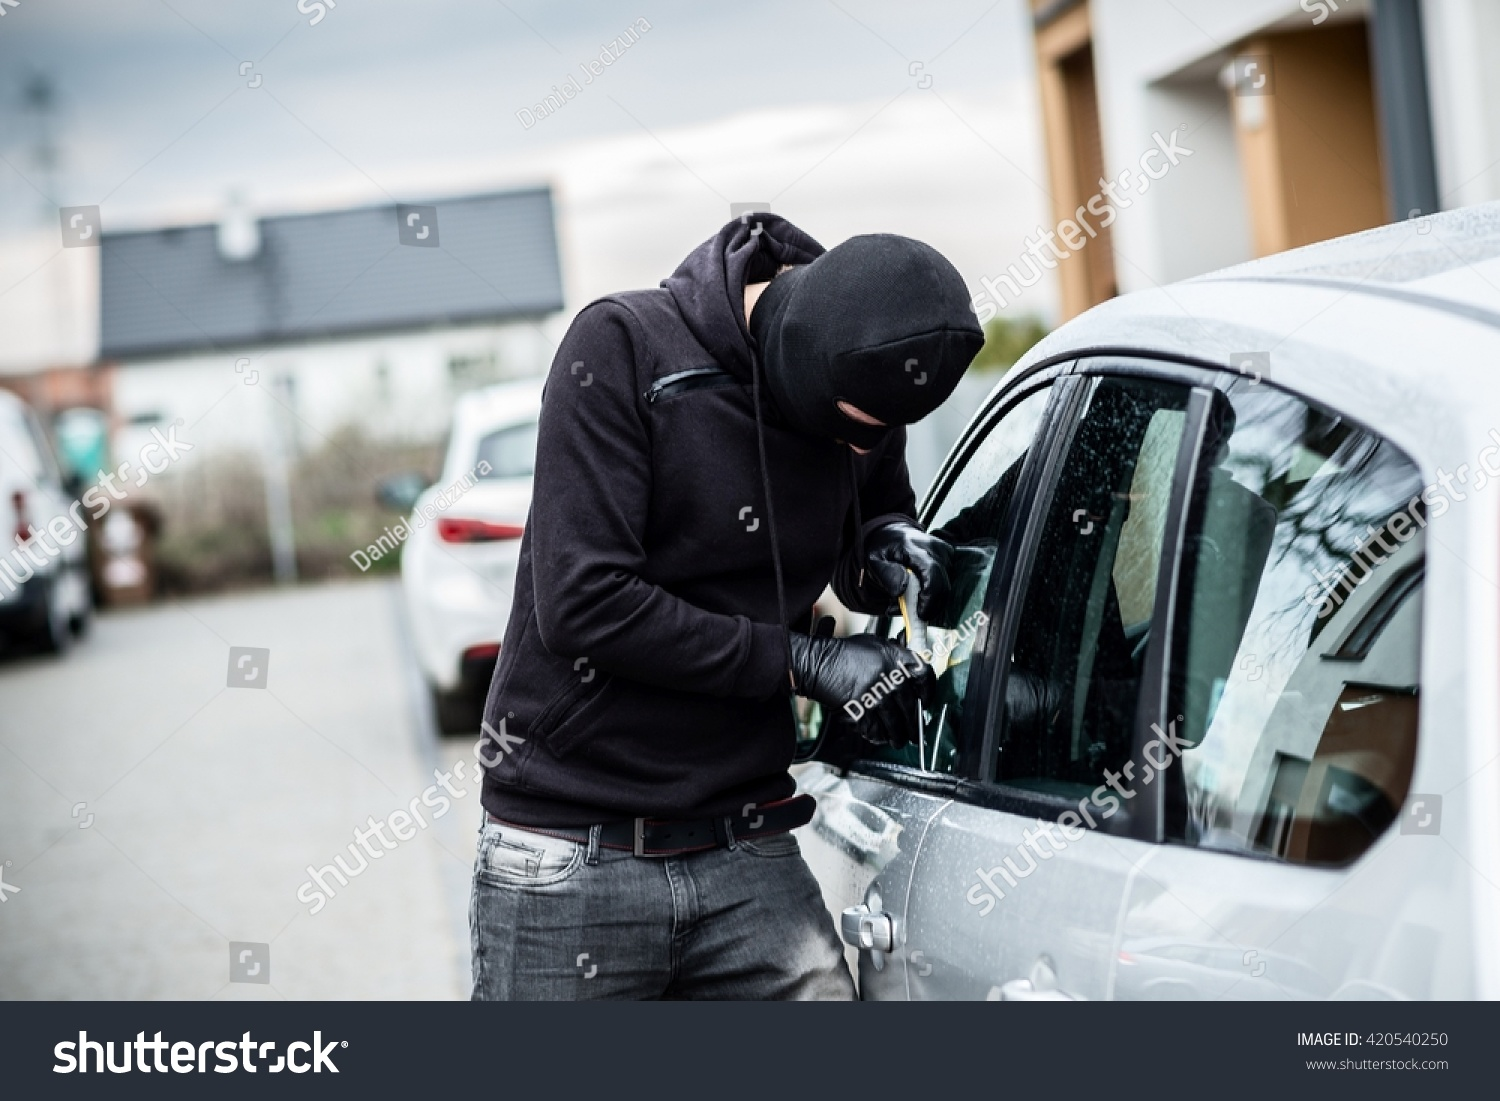 how to break into any car